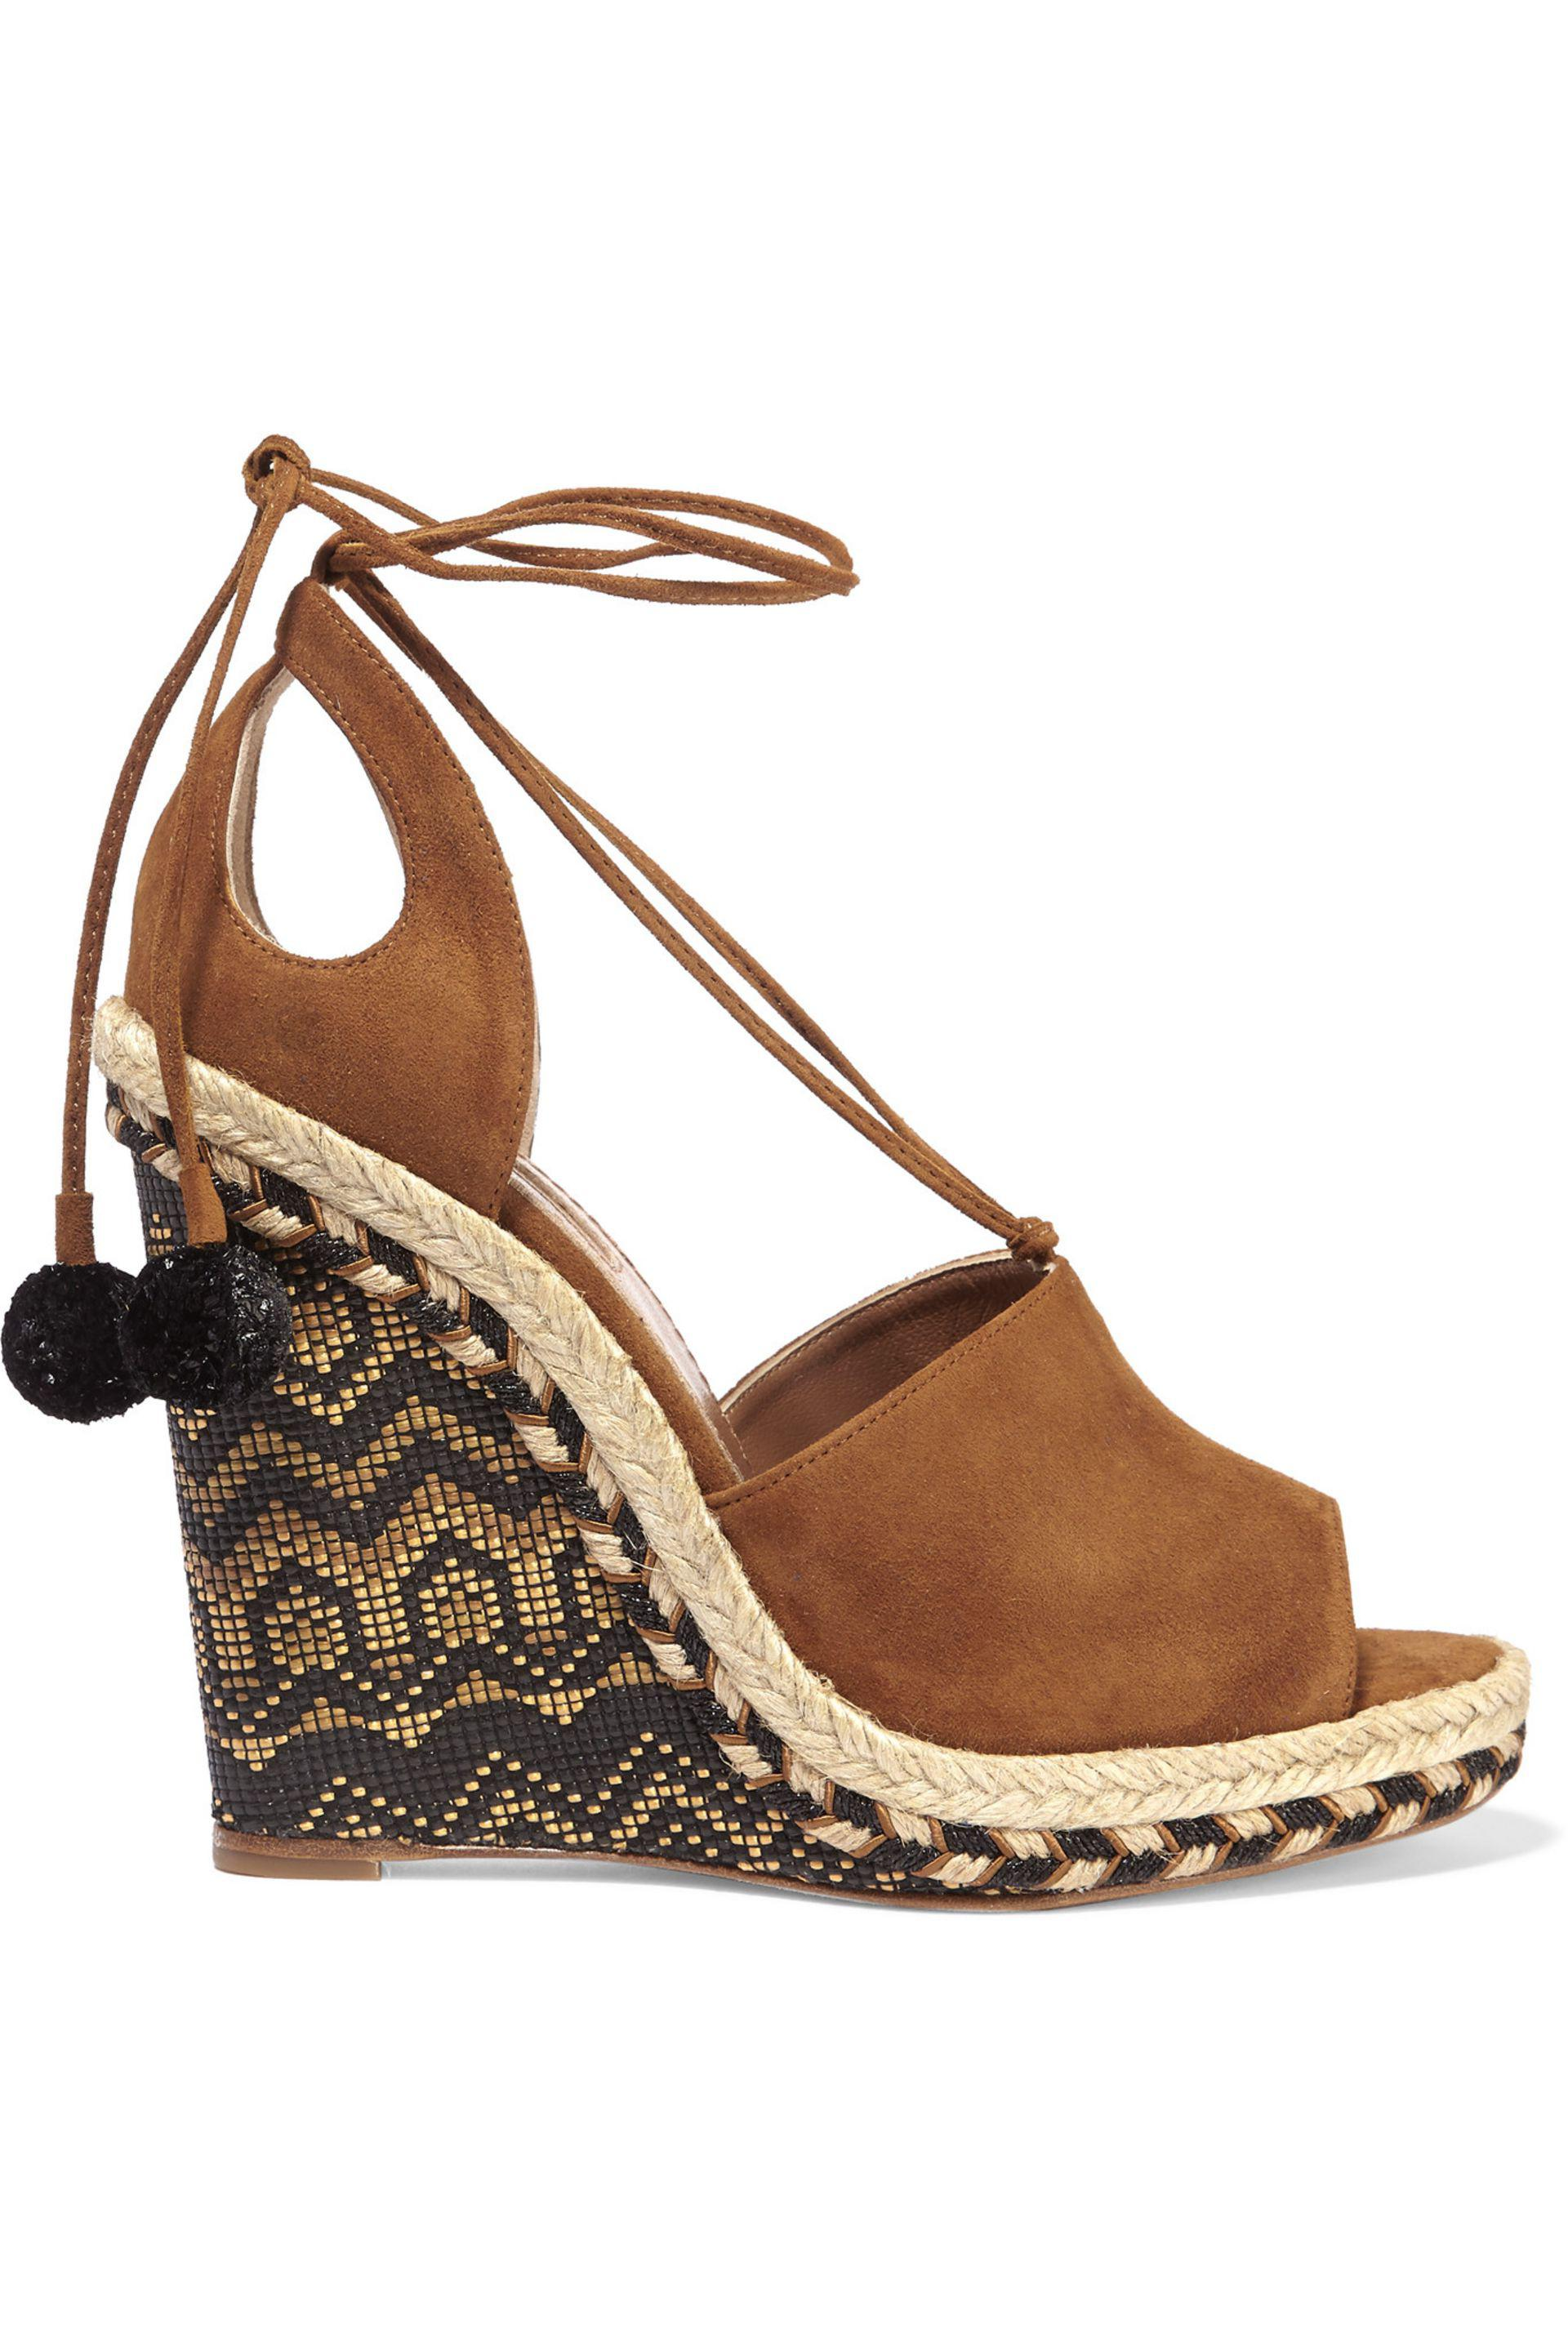 Aquazzura Palm Springs Wedge Sandals free shipping enjoy with credit card free shipping AhtawWmf